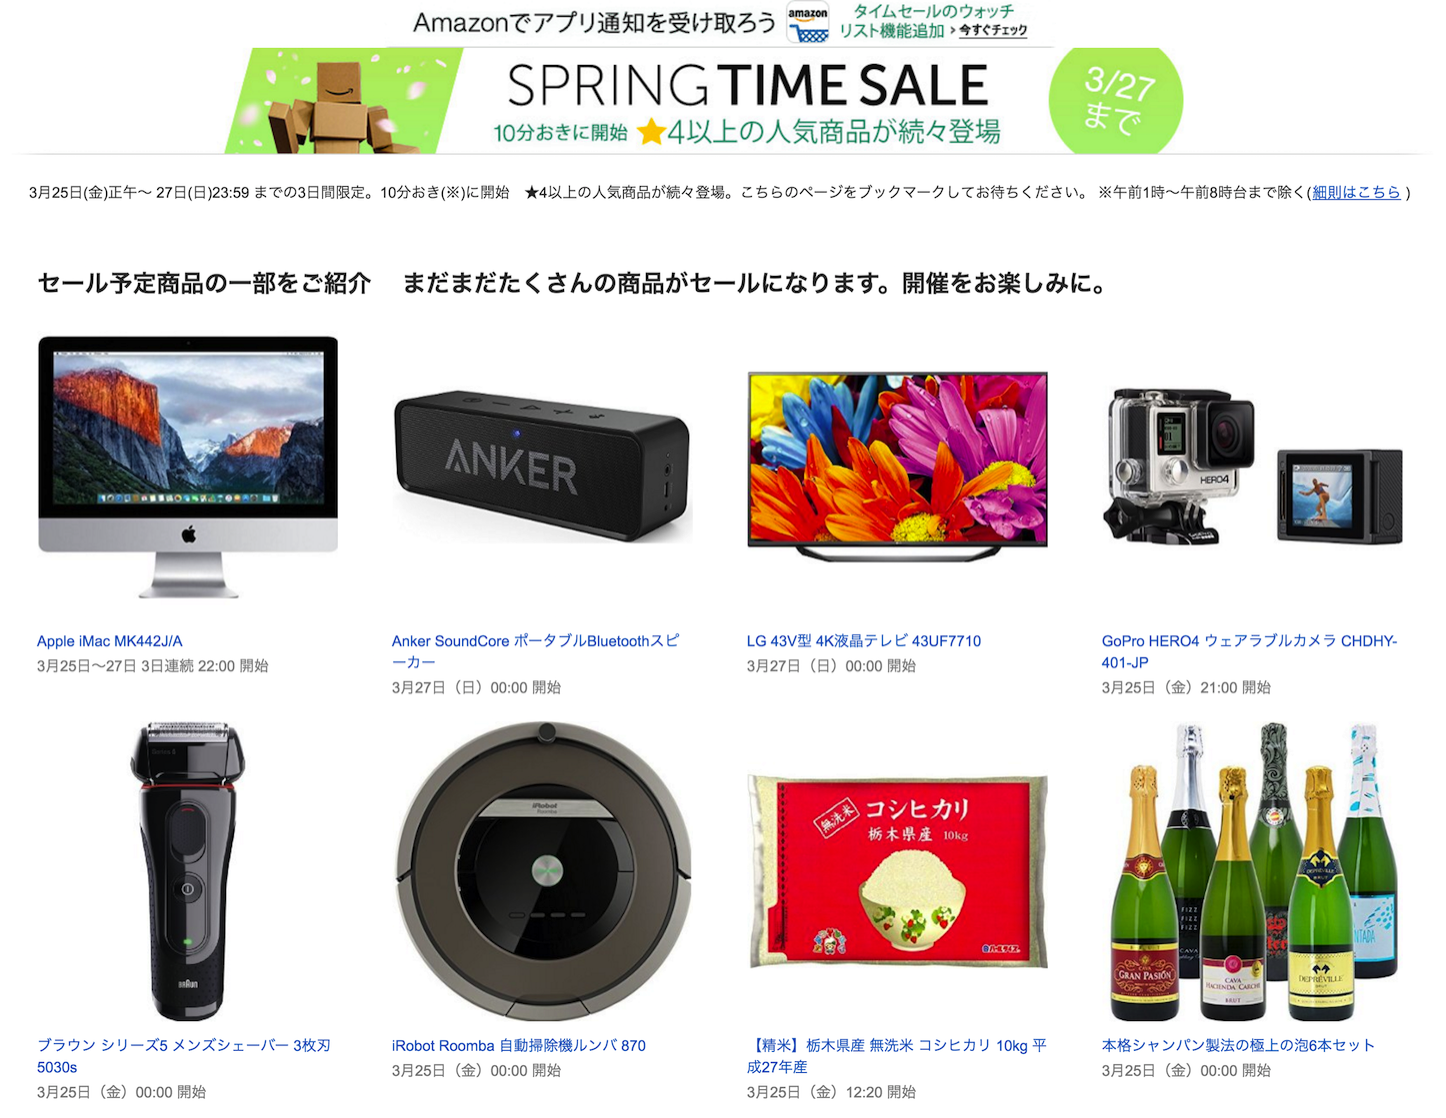 Sping Time Sale Amazon